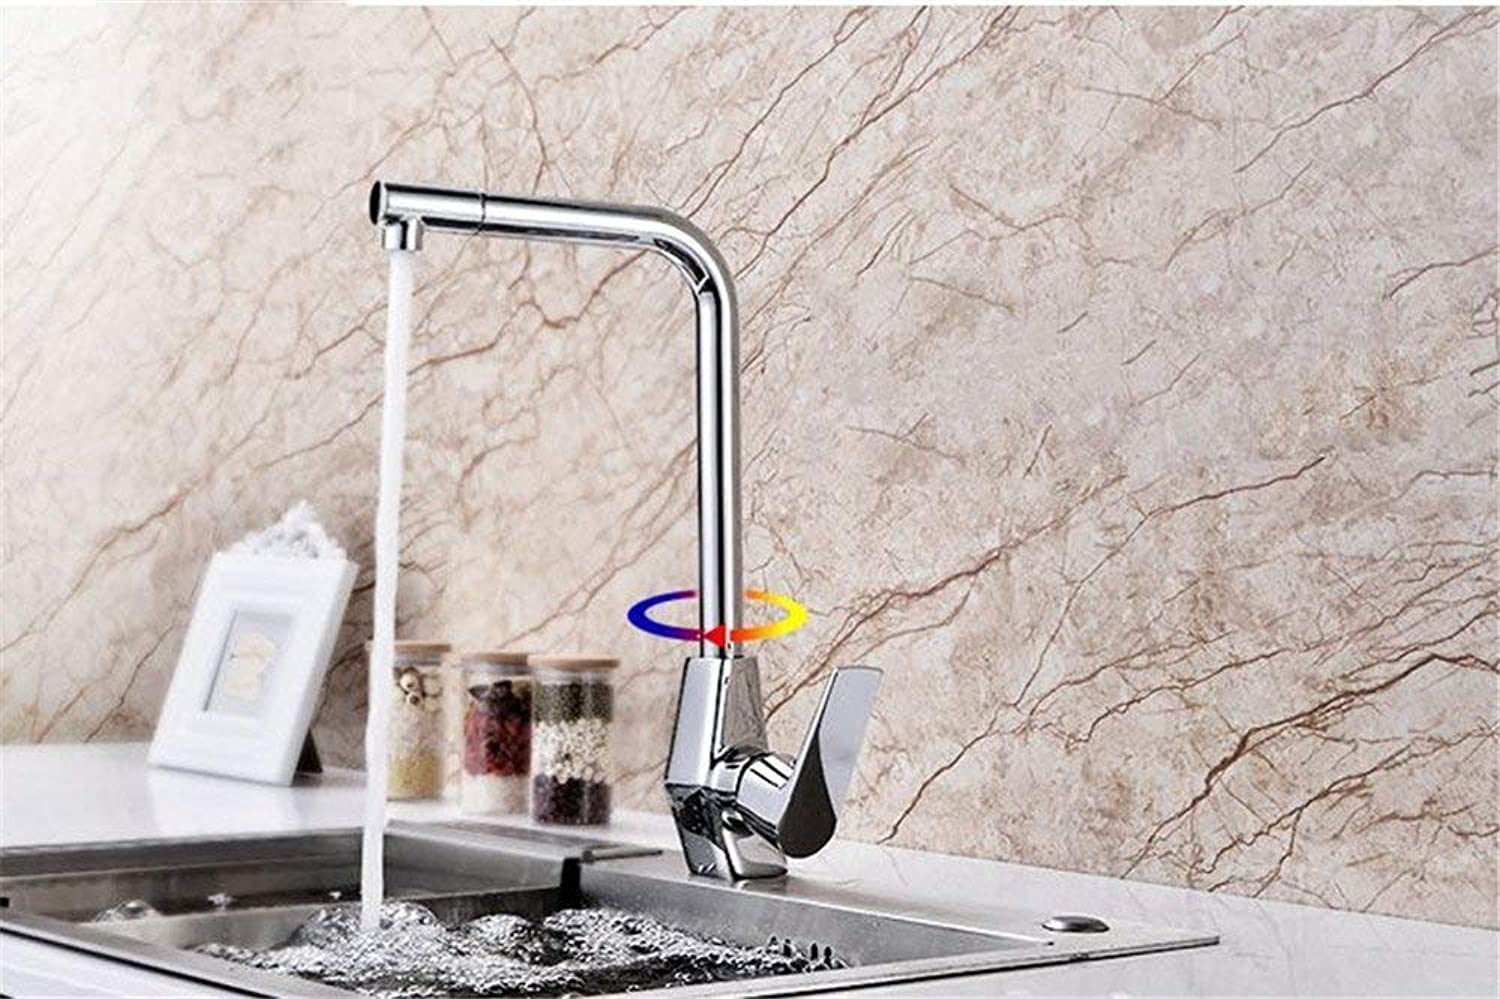 Oudan Creative Copper Kitchen Faucet Swing Swing Kitchen Cold Hot Water Faucet Shower Accessories (color   -, Size   -)